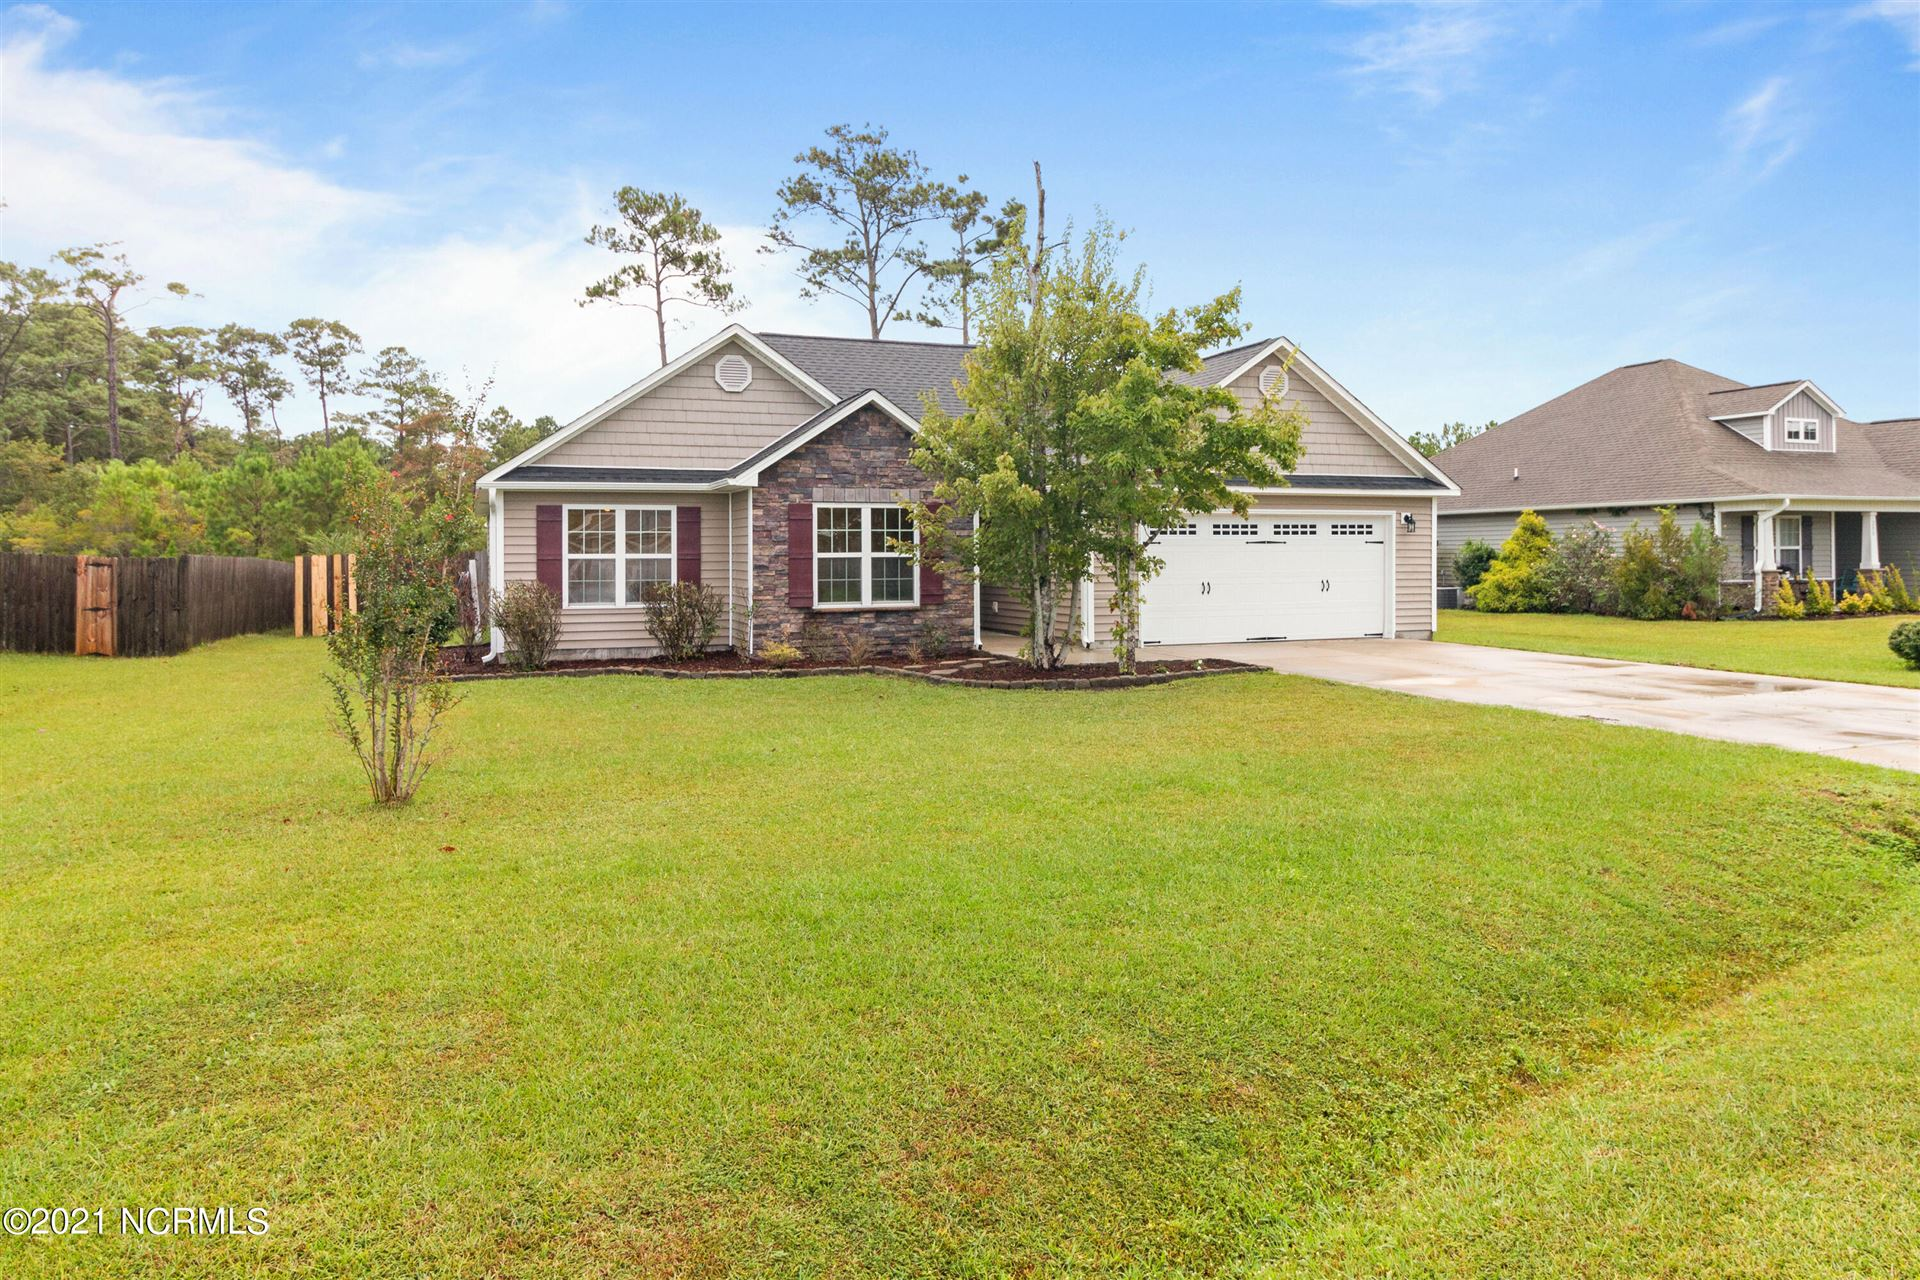 Photo of 210 Marsh Haven Drive, Sneads Ferry, NC 28460 (MLS # 100292044)